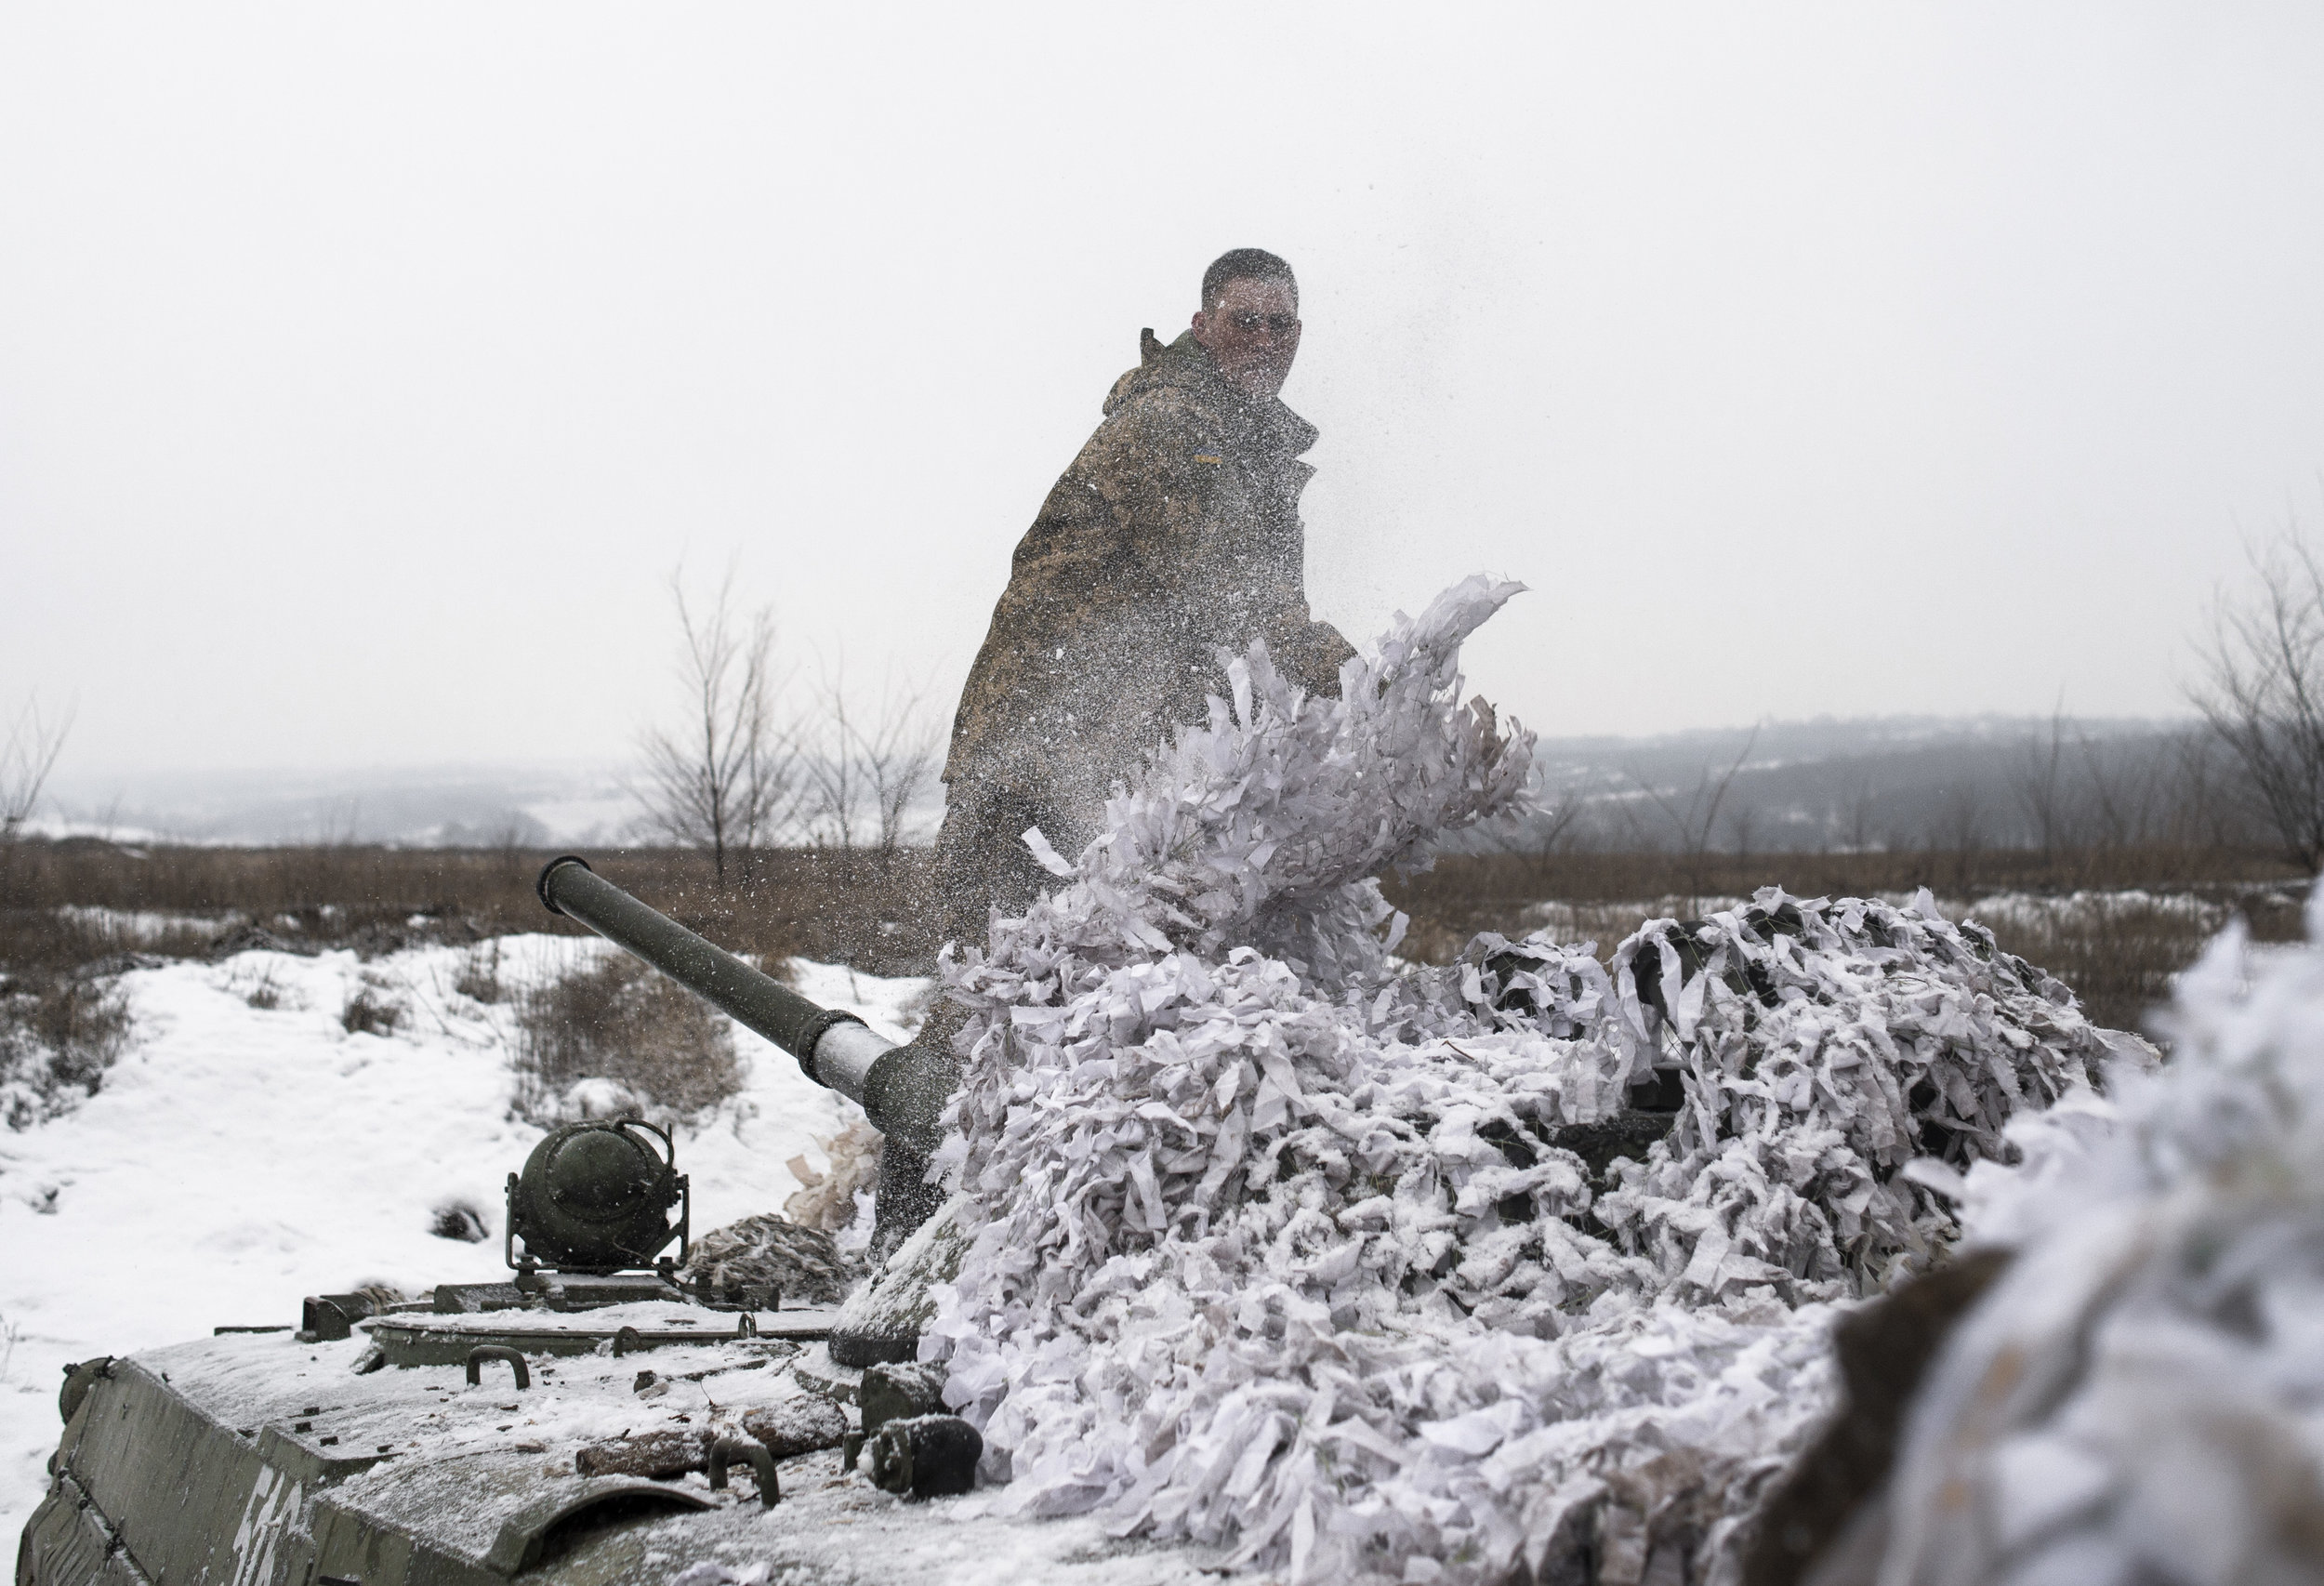 A soldier in the 54th Mechanized Rifle Brigade uncovers an APC or Armored Personnel Carrier that sits ready for fighting on the frontlines of the Donbas War.